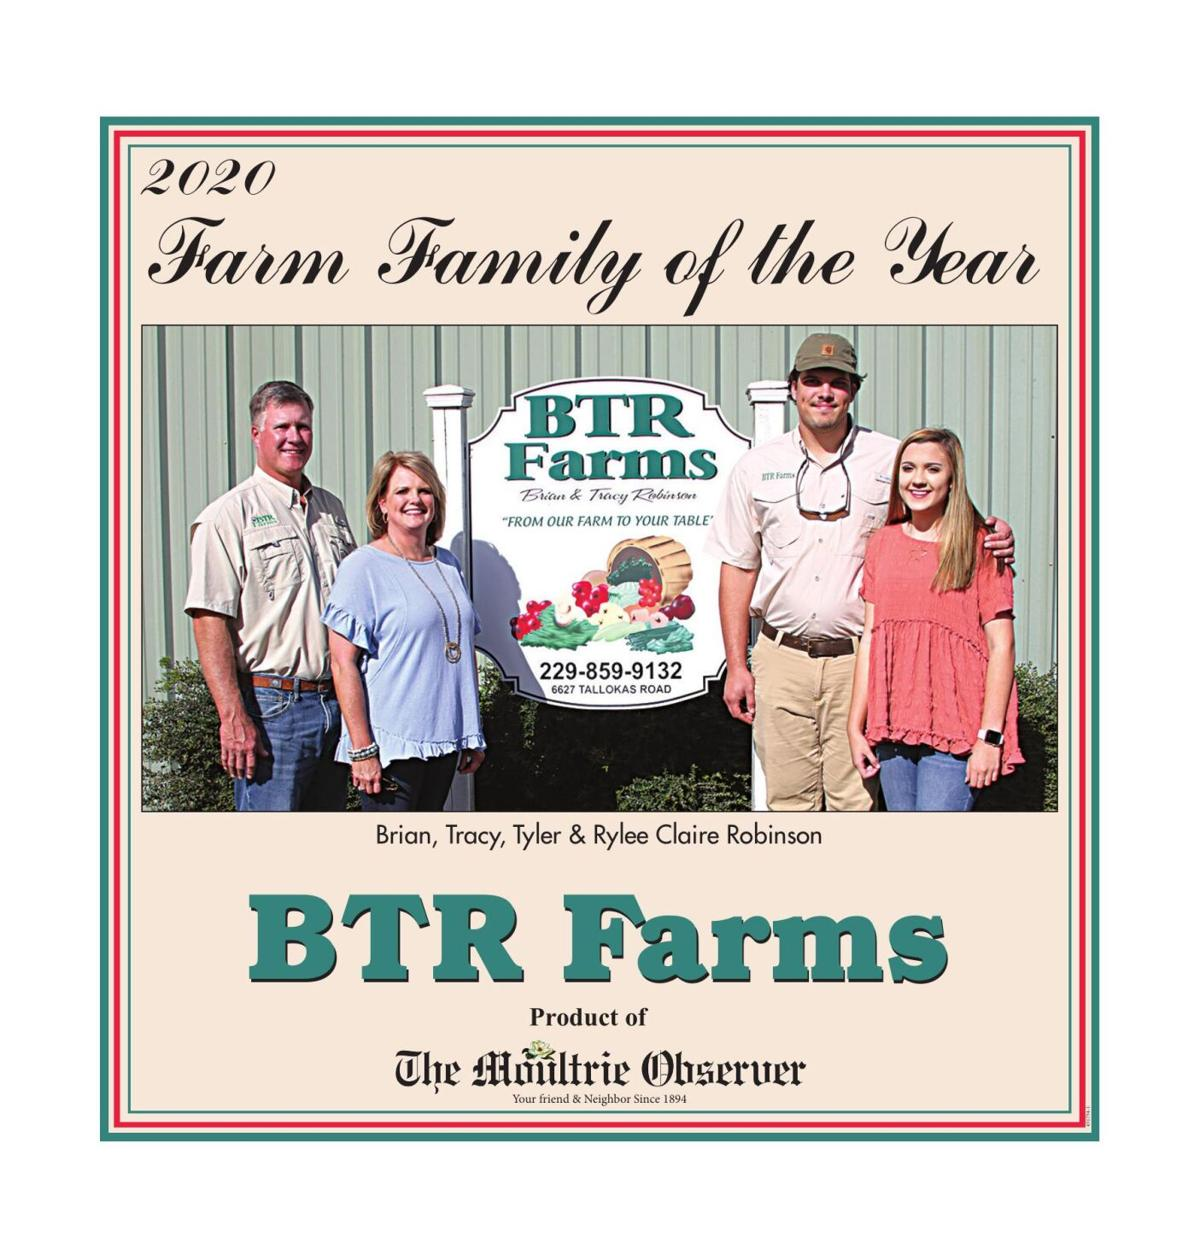 Farm Family of the Year, 2020